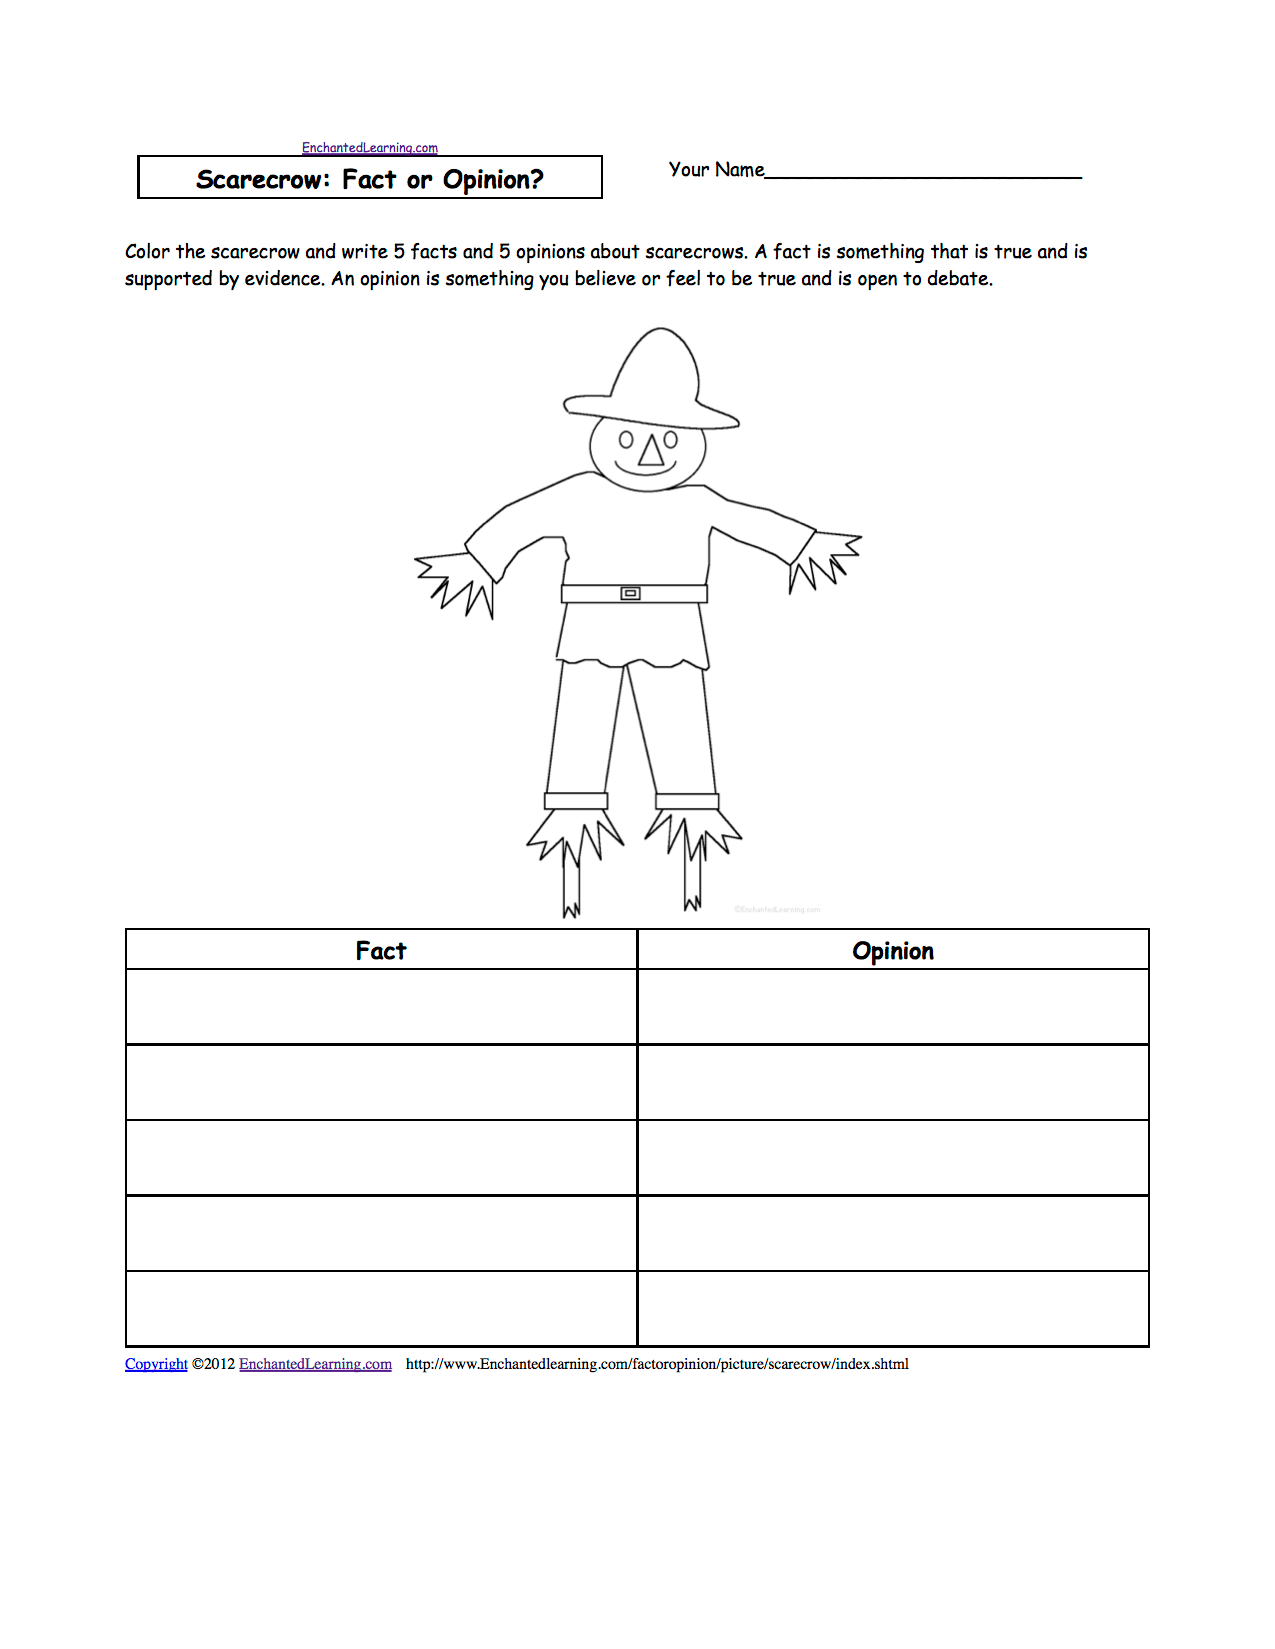 Scarecrow Activities At Enchantedlearning